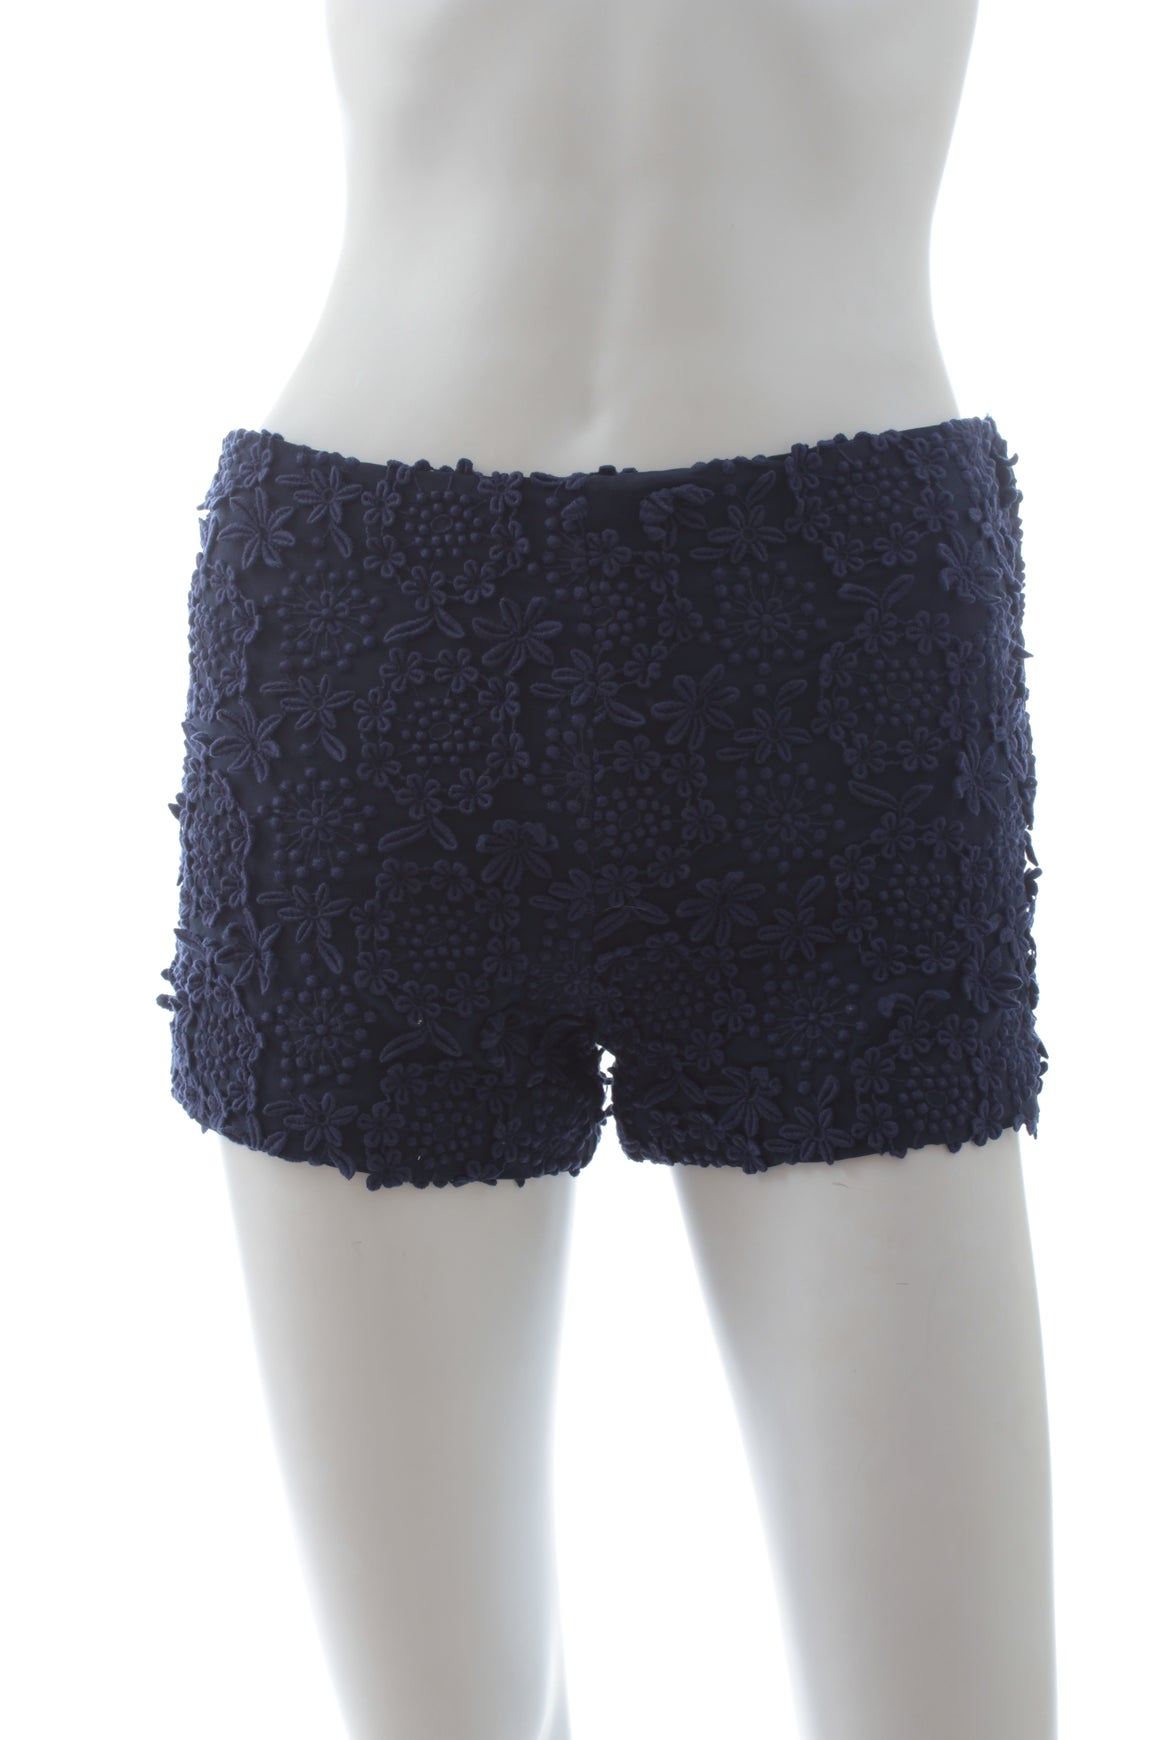 Prada Flower Embroidered Shorts